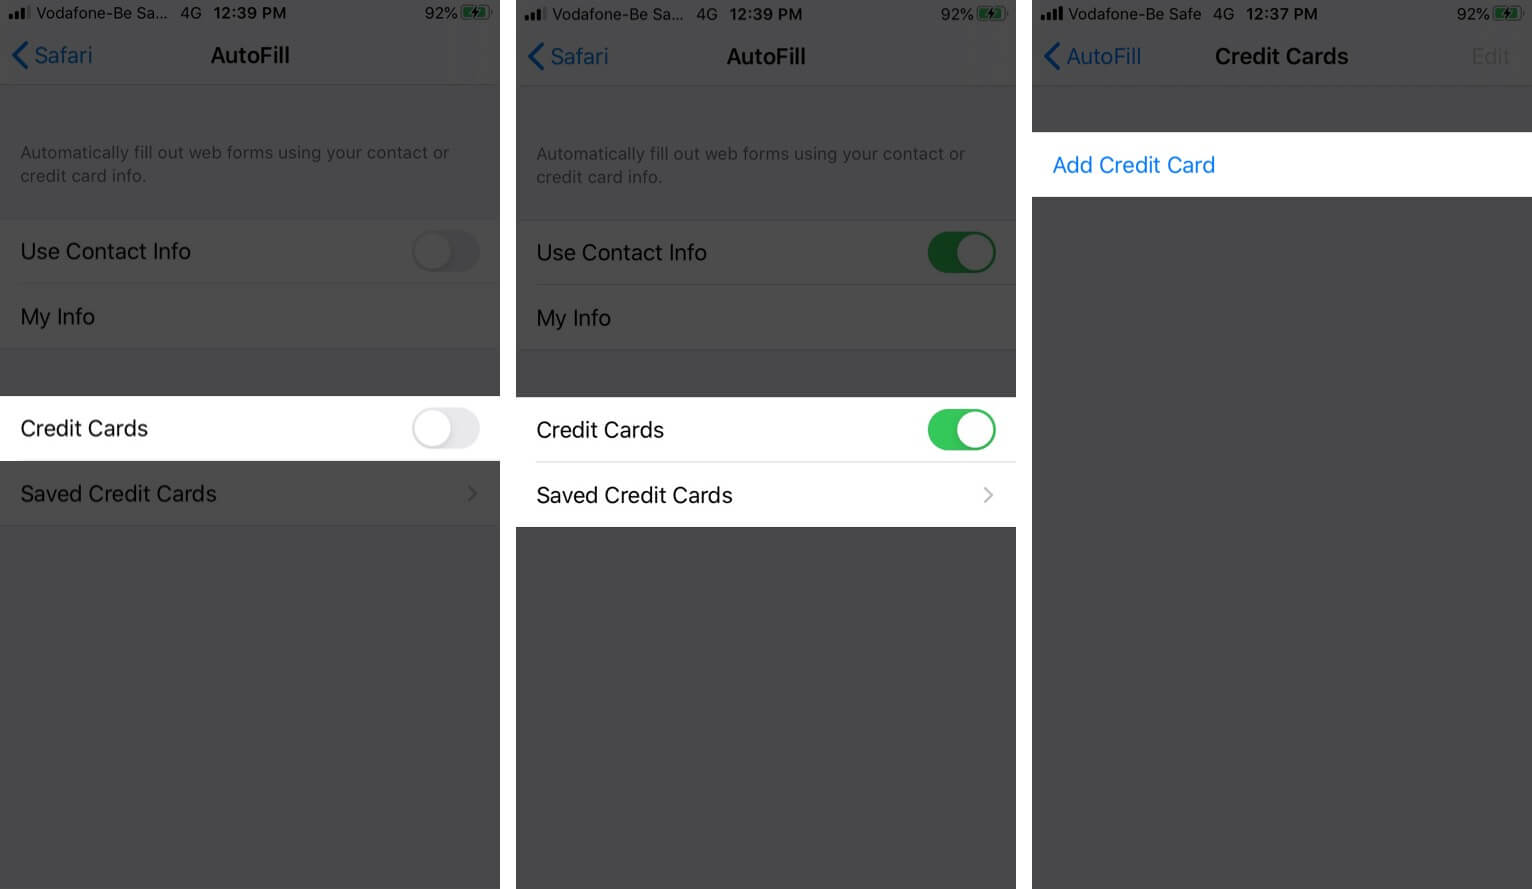 Turn ON Credit Card and Then Tap on Save Credit Cards and Tap on Add Credit Card